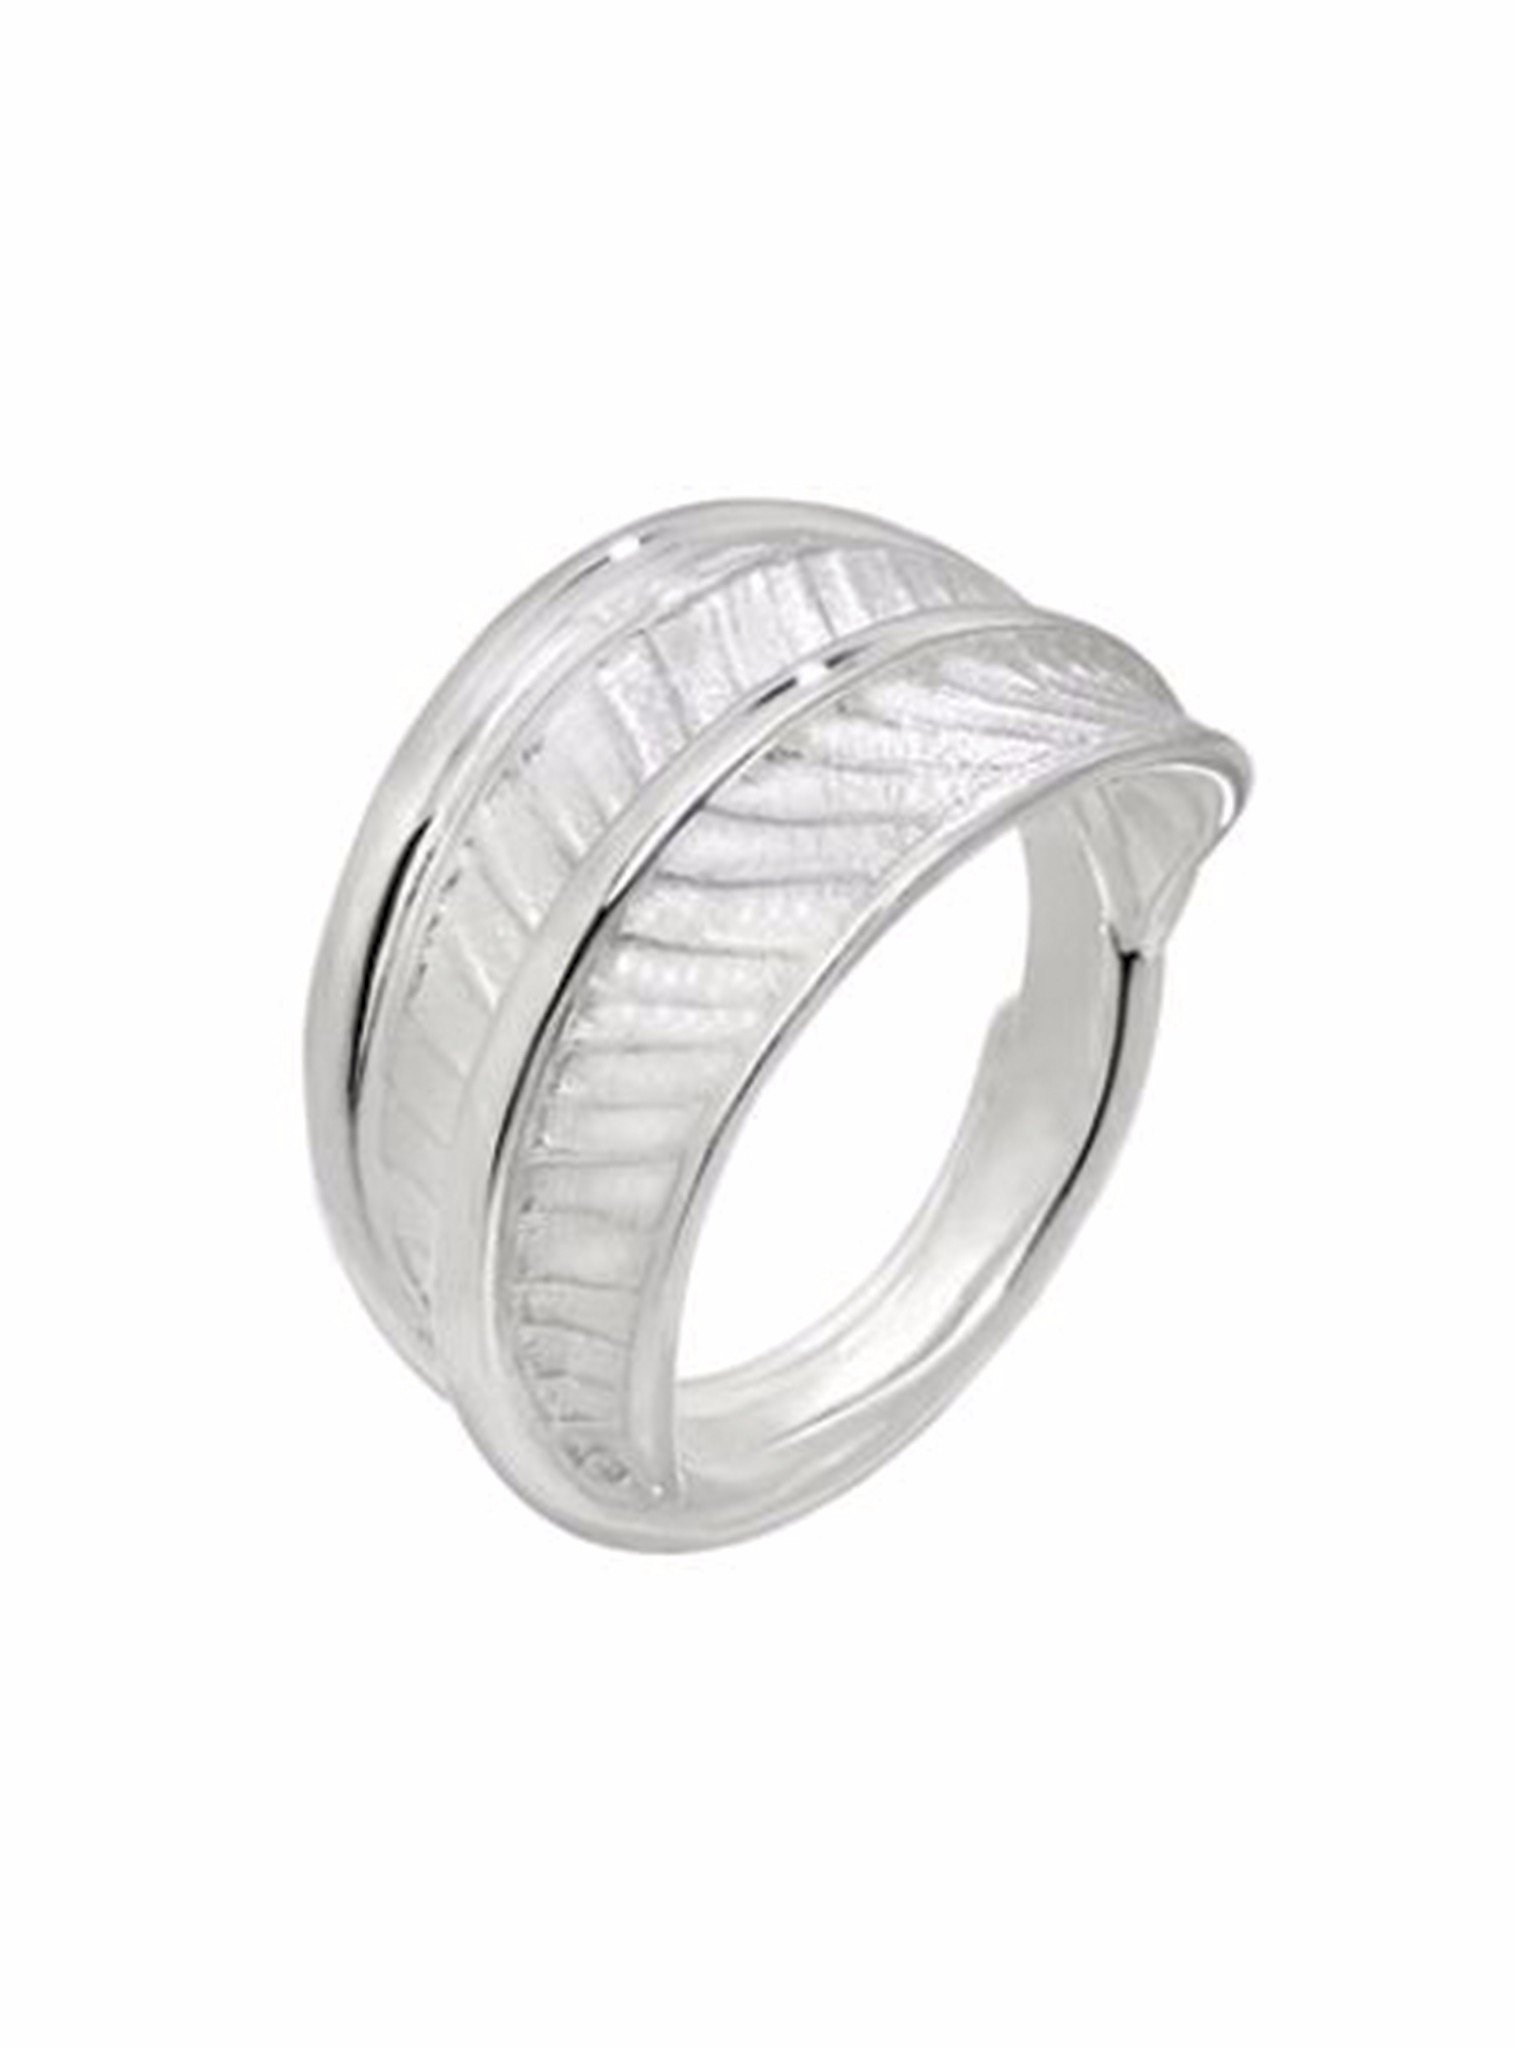 Fern Leaf Ring in Sterling Silver